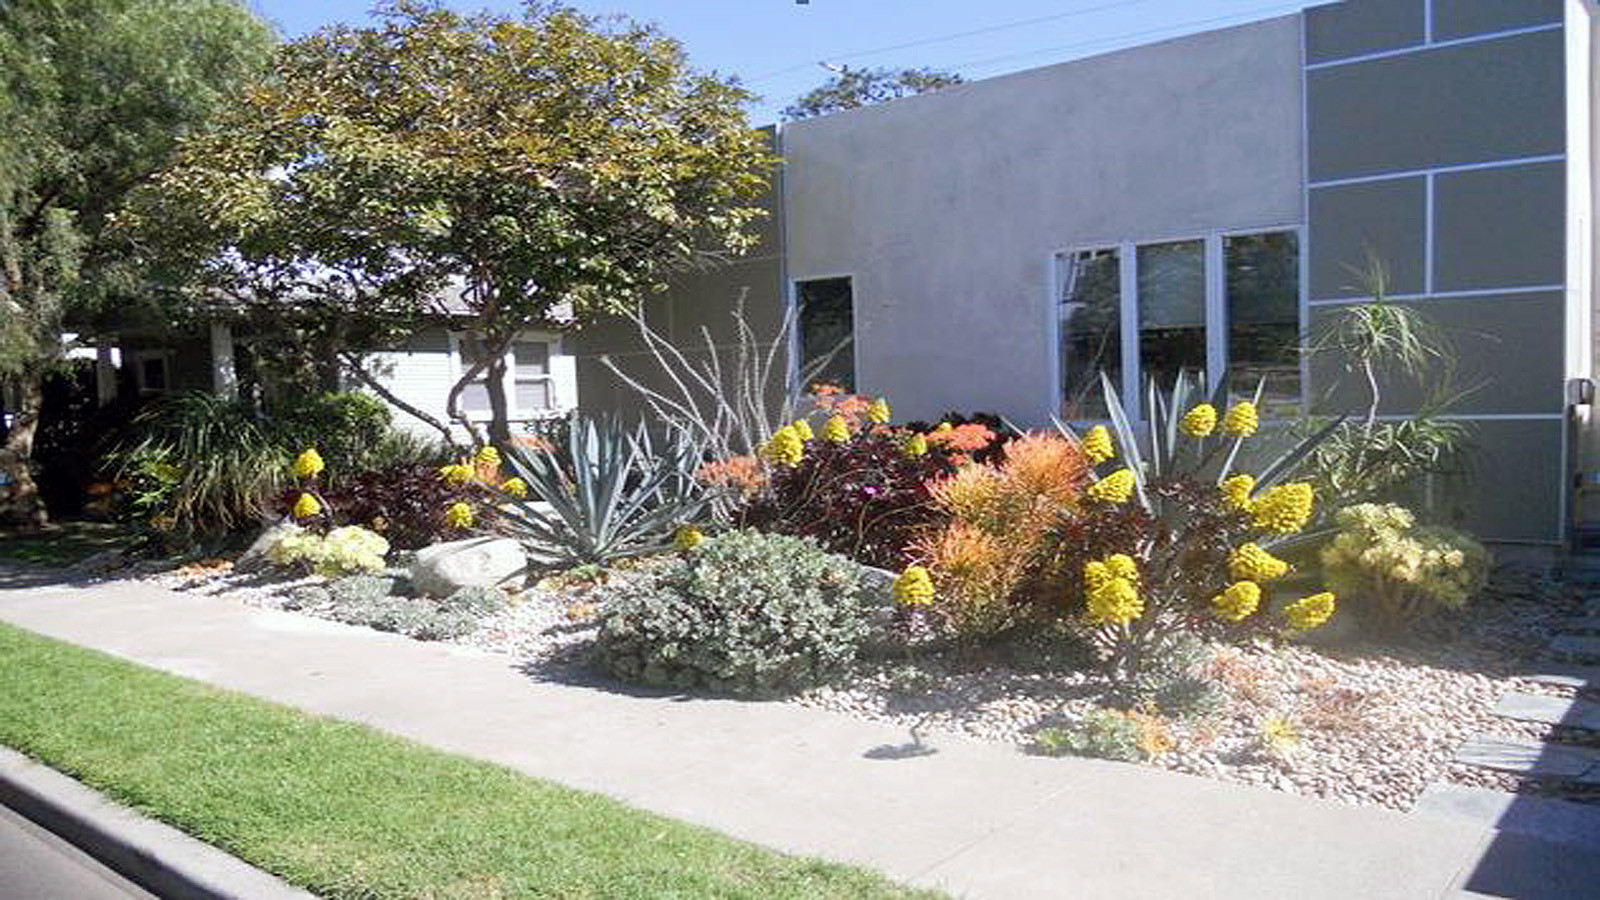 Aloes, succulents, ocotillo and more now bloom in the front yard.